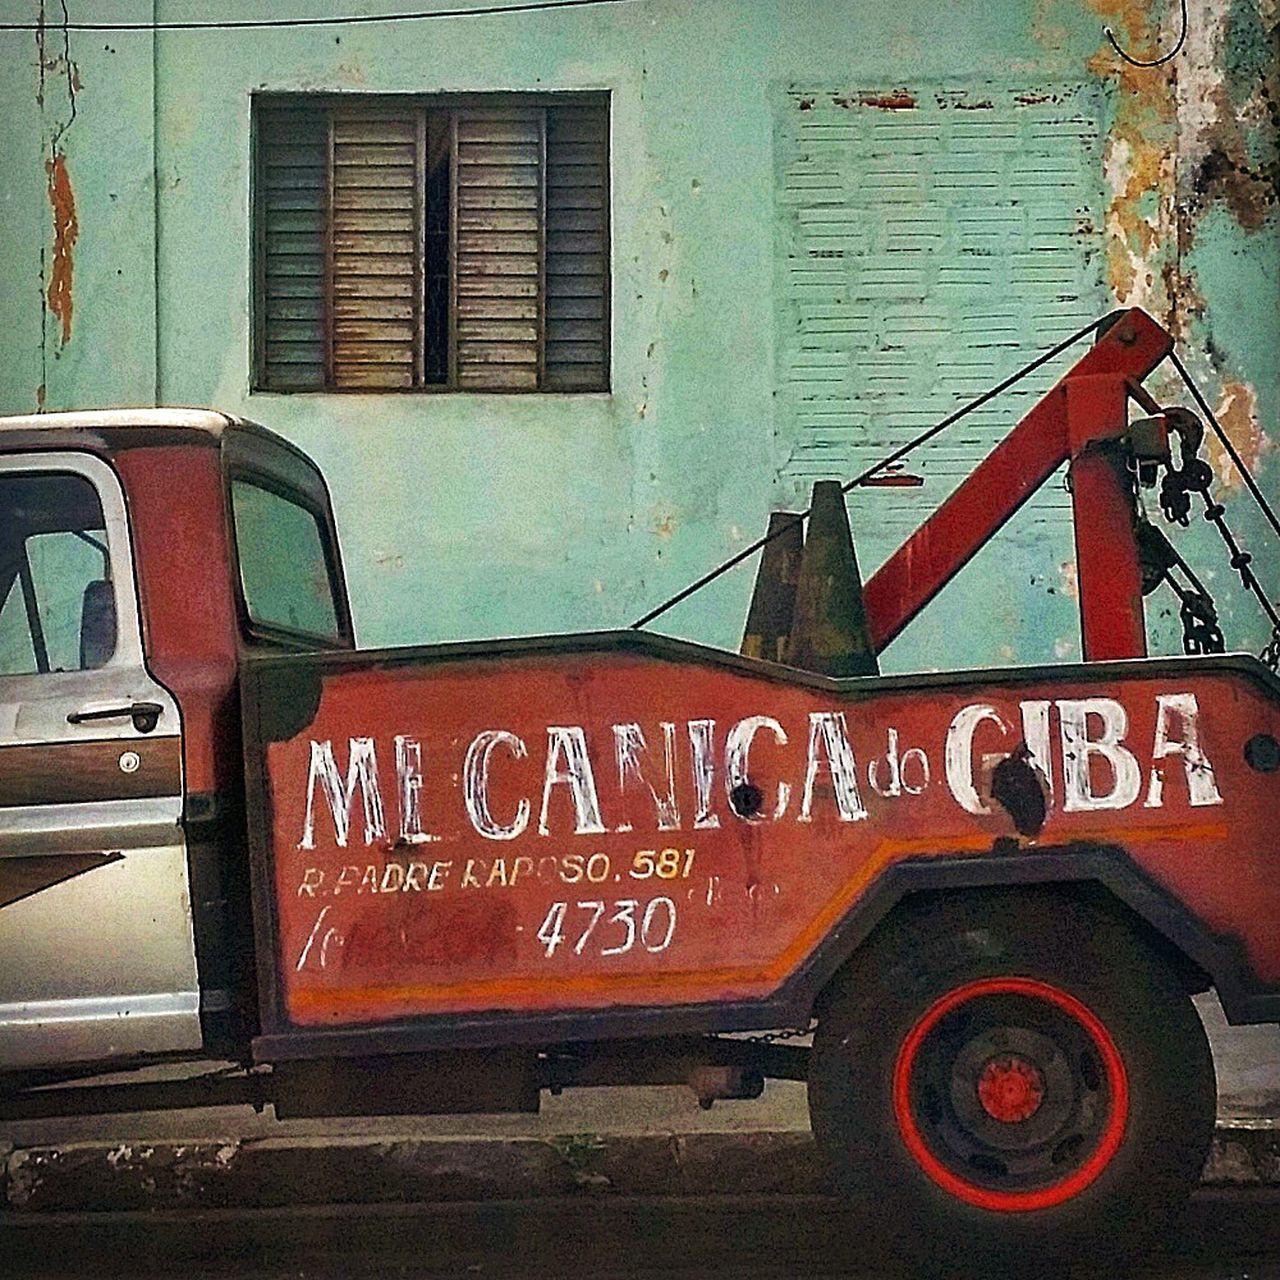 Mechanic Carlovers Vintage Cars Tow Truck Wrecker